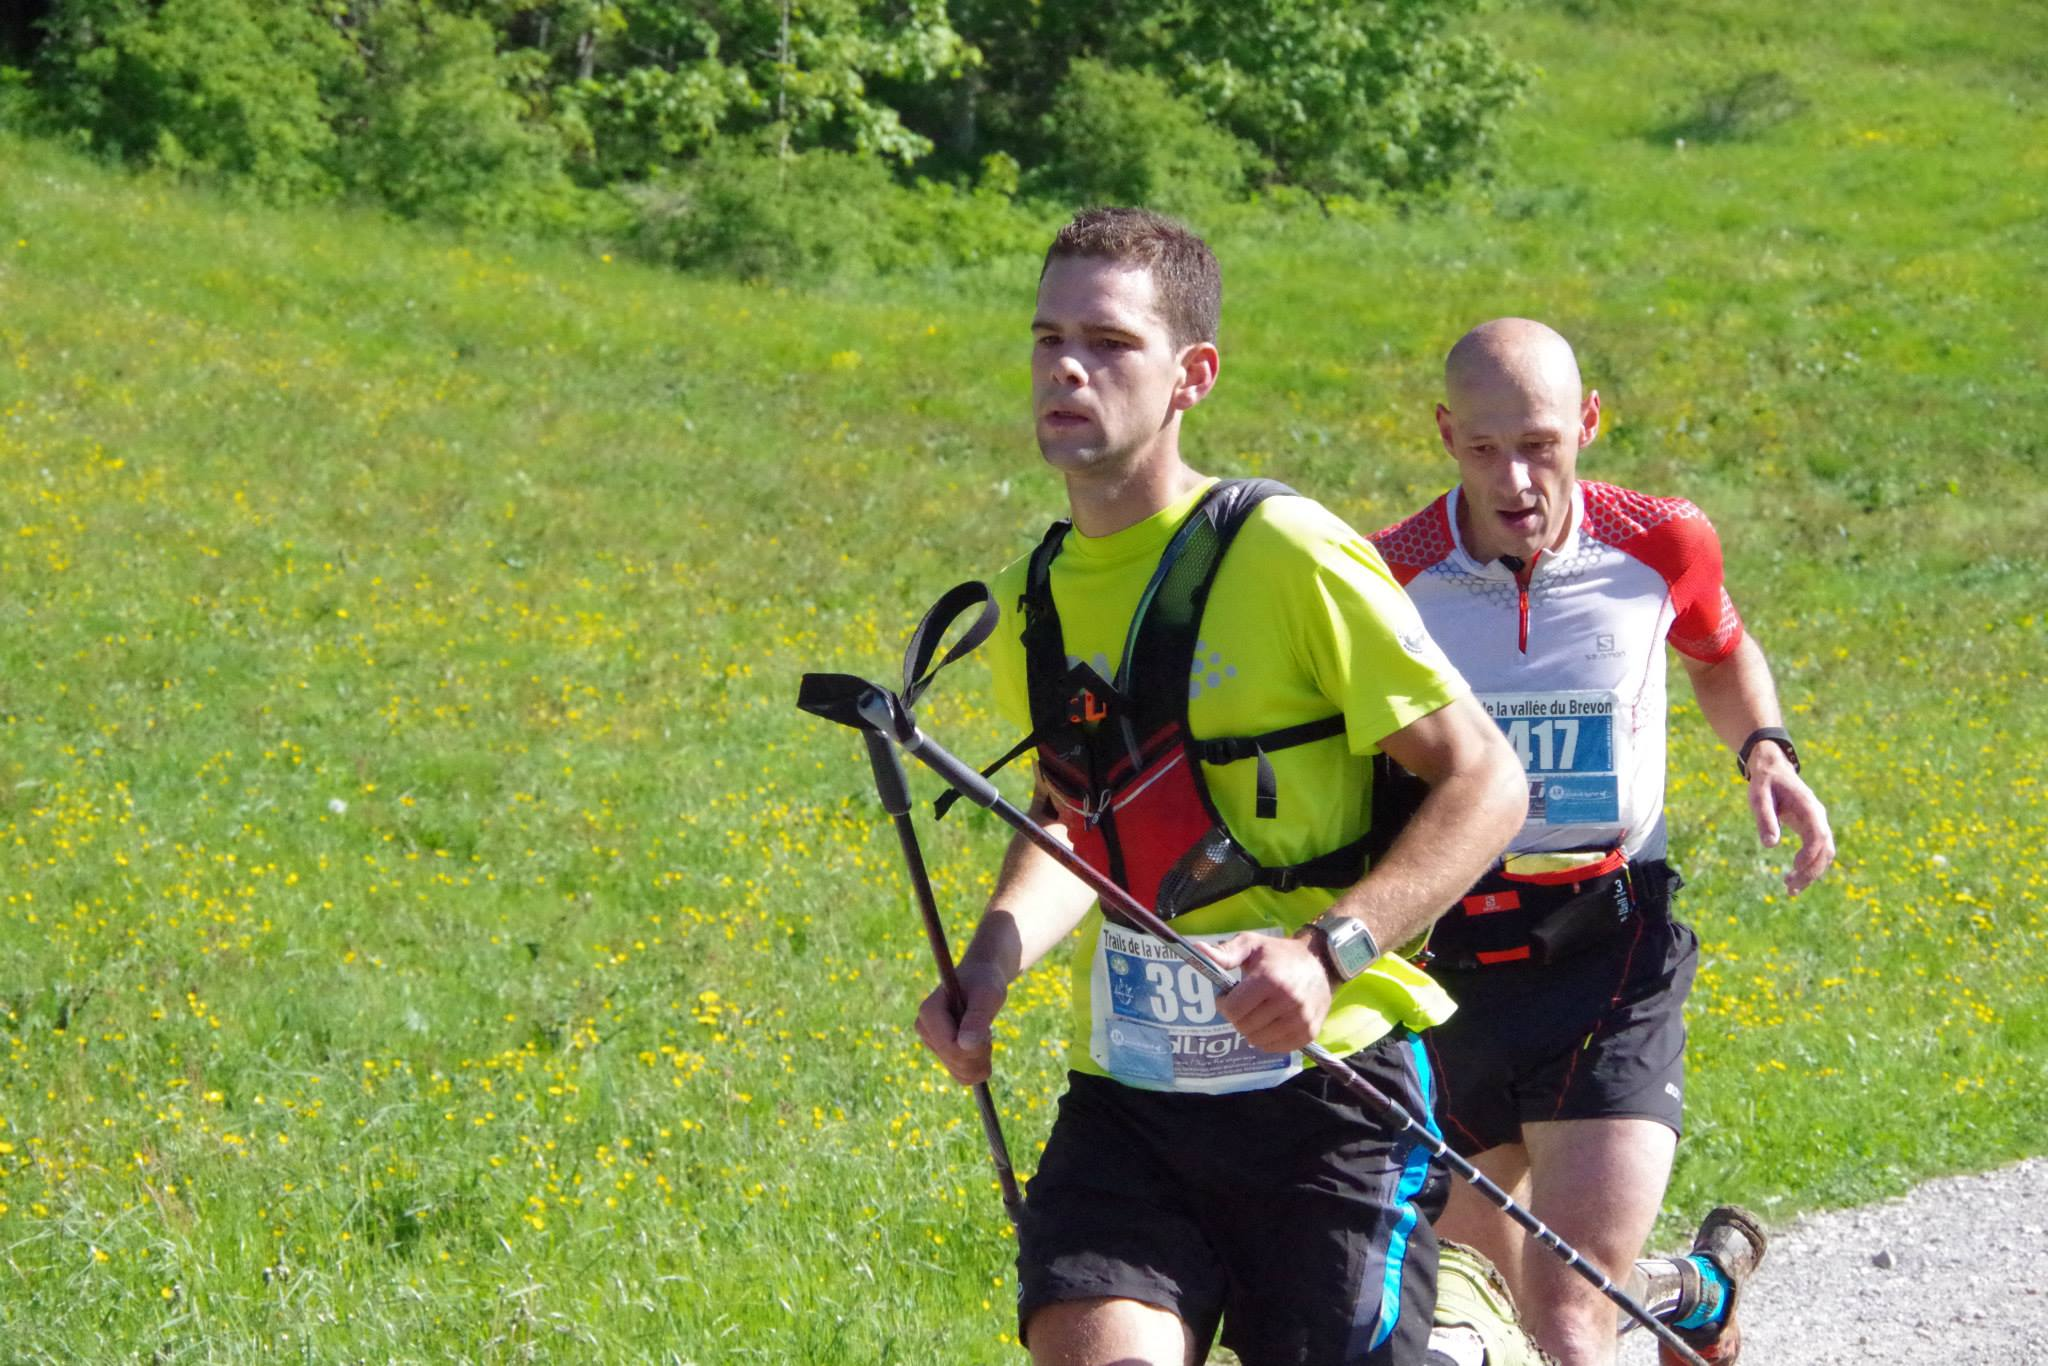 10498144 10153893141832782 6061464977664673096 o - RESULTATS, COMMENTAIRES, PHOTOS ET VIDEO DES TRAILS DE LA VALLEE DU BREVON / 24-05-15